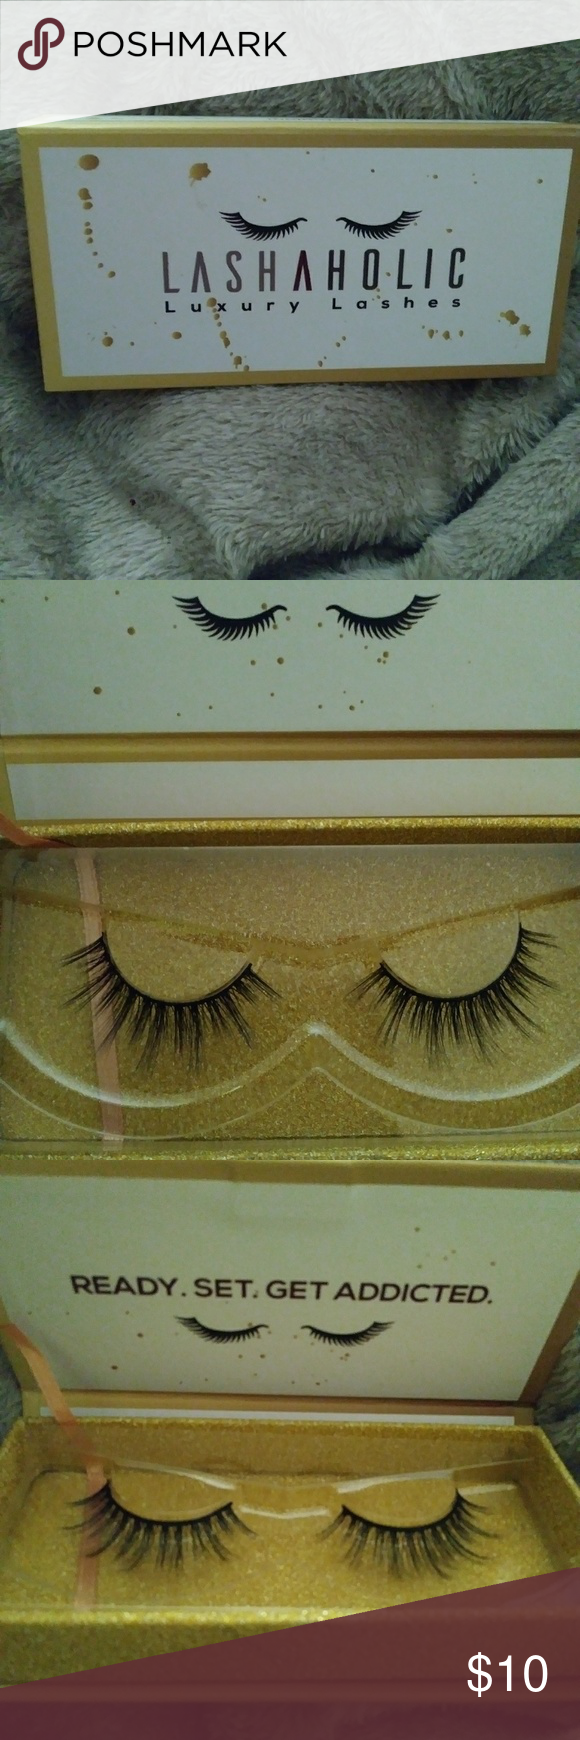 852c95fb9e7 100% vegan falsies..Made from silk fibers.. Giving you Dimension, Length,  Volume & A Natural Look... New and Unused... #63 LASHAHOLIC Makeup False  Eyelashes